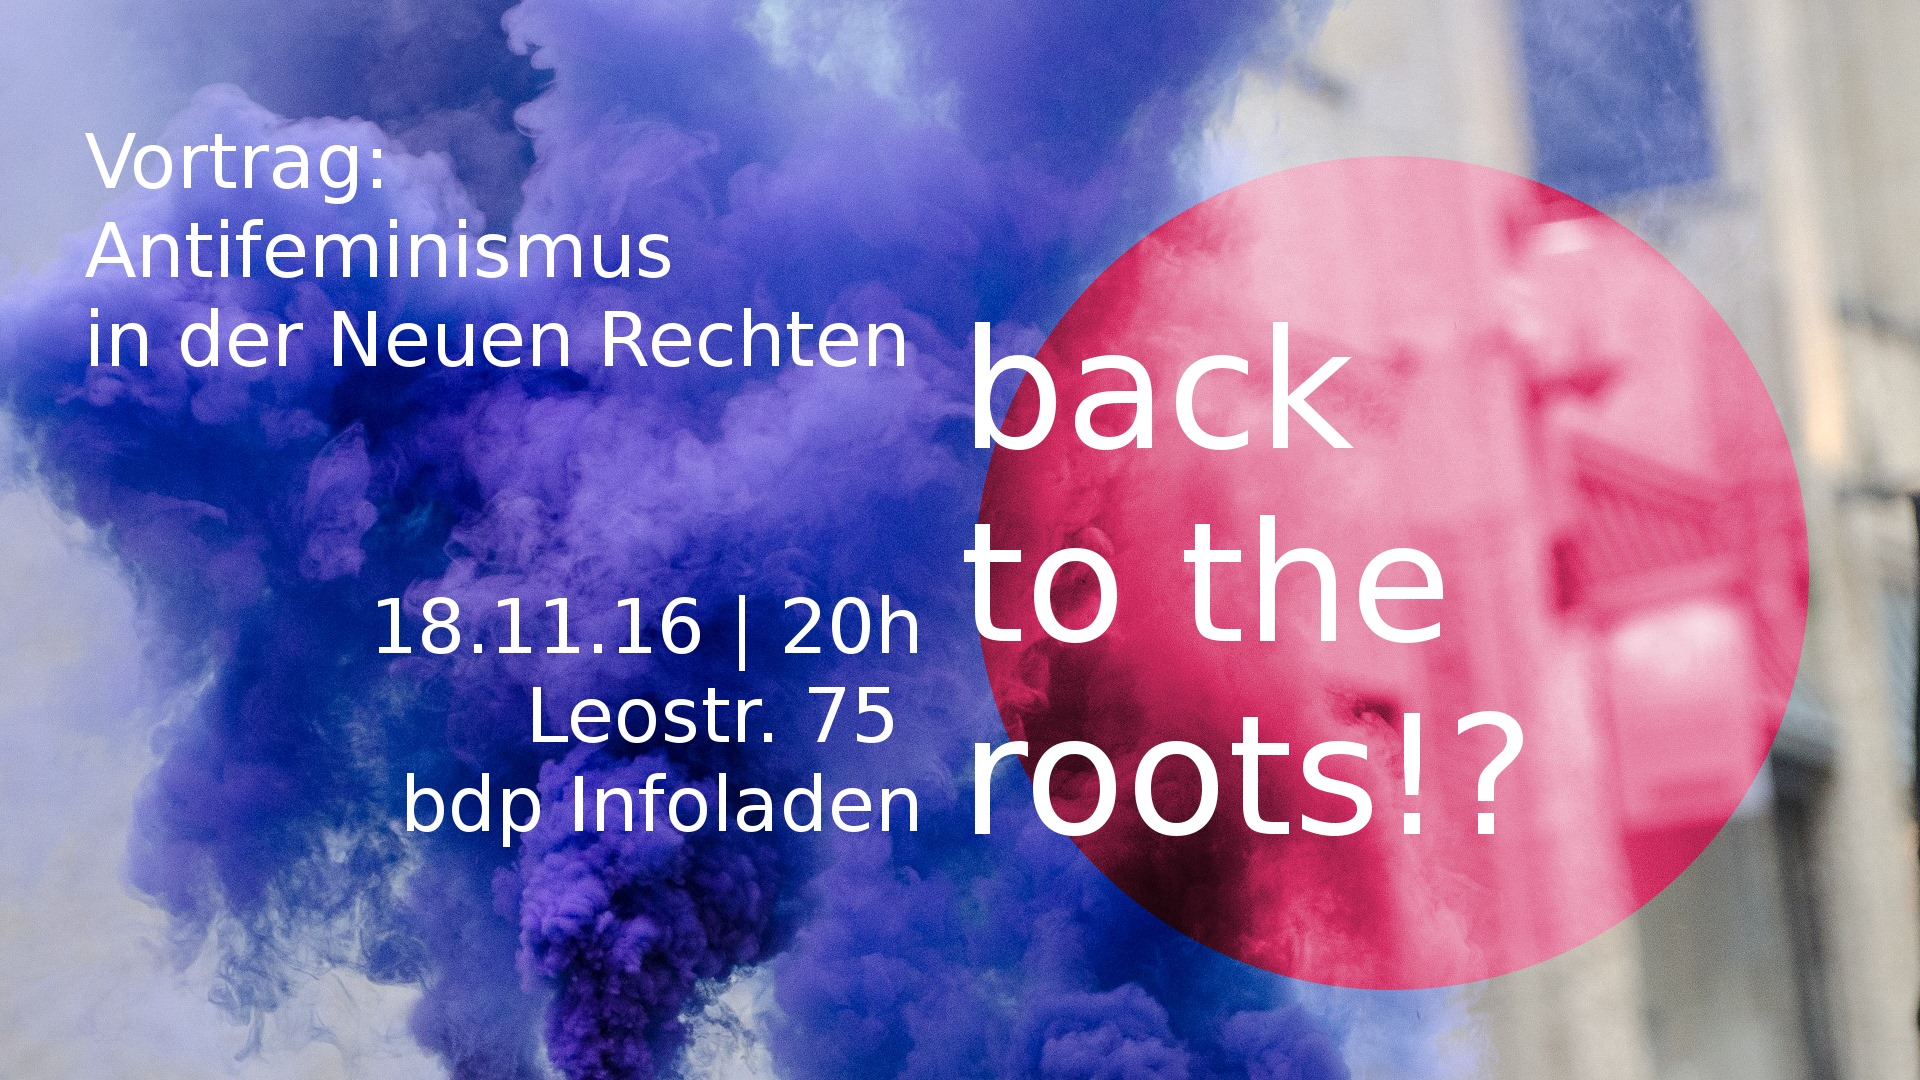 """Back to the roots?! – Antifeminismus in der Neuen Rechten"